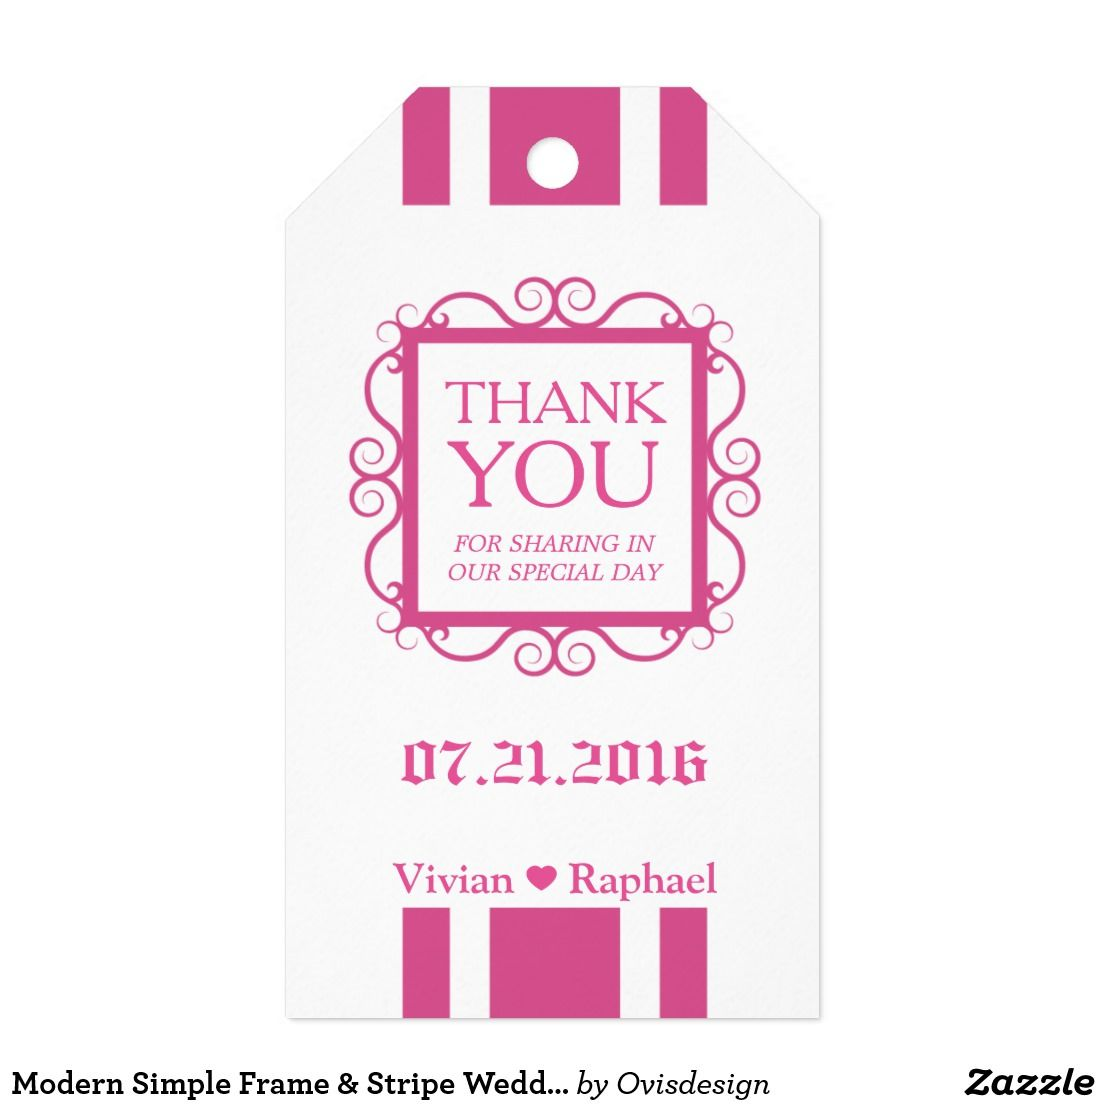 Modern Simple Frame & Stripe Wedding Thank You | wedding favor ...